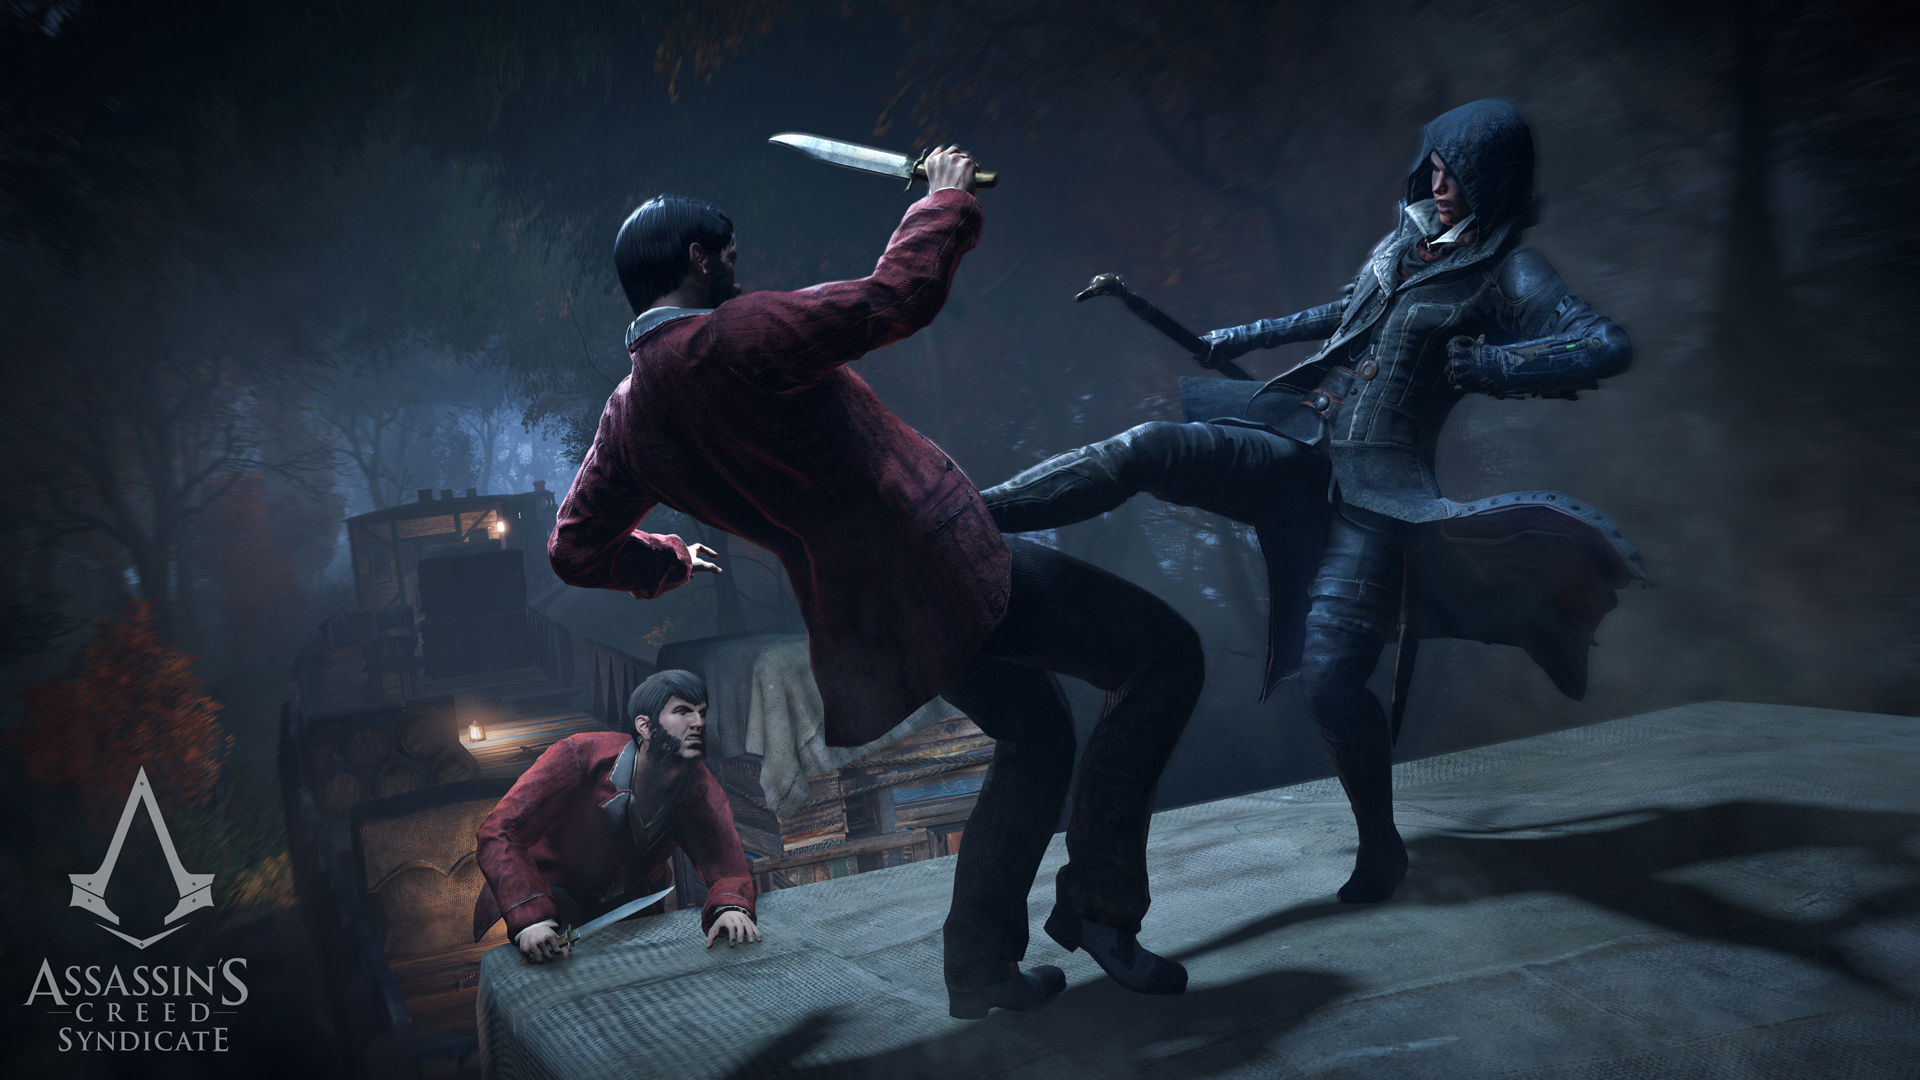 Assassin S Creed Syndicate Hands On With Evie Frye Preview